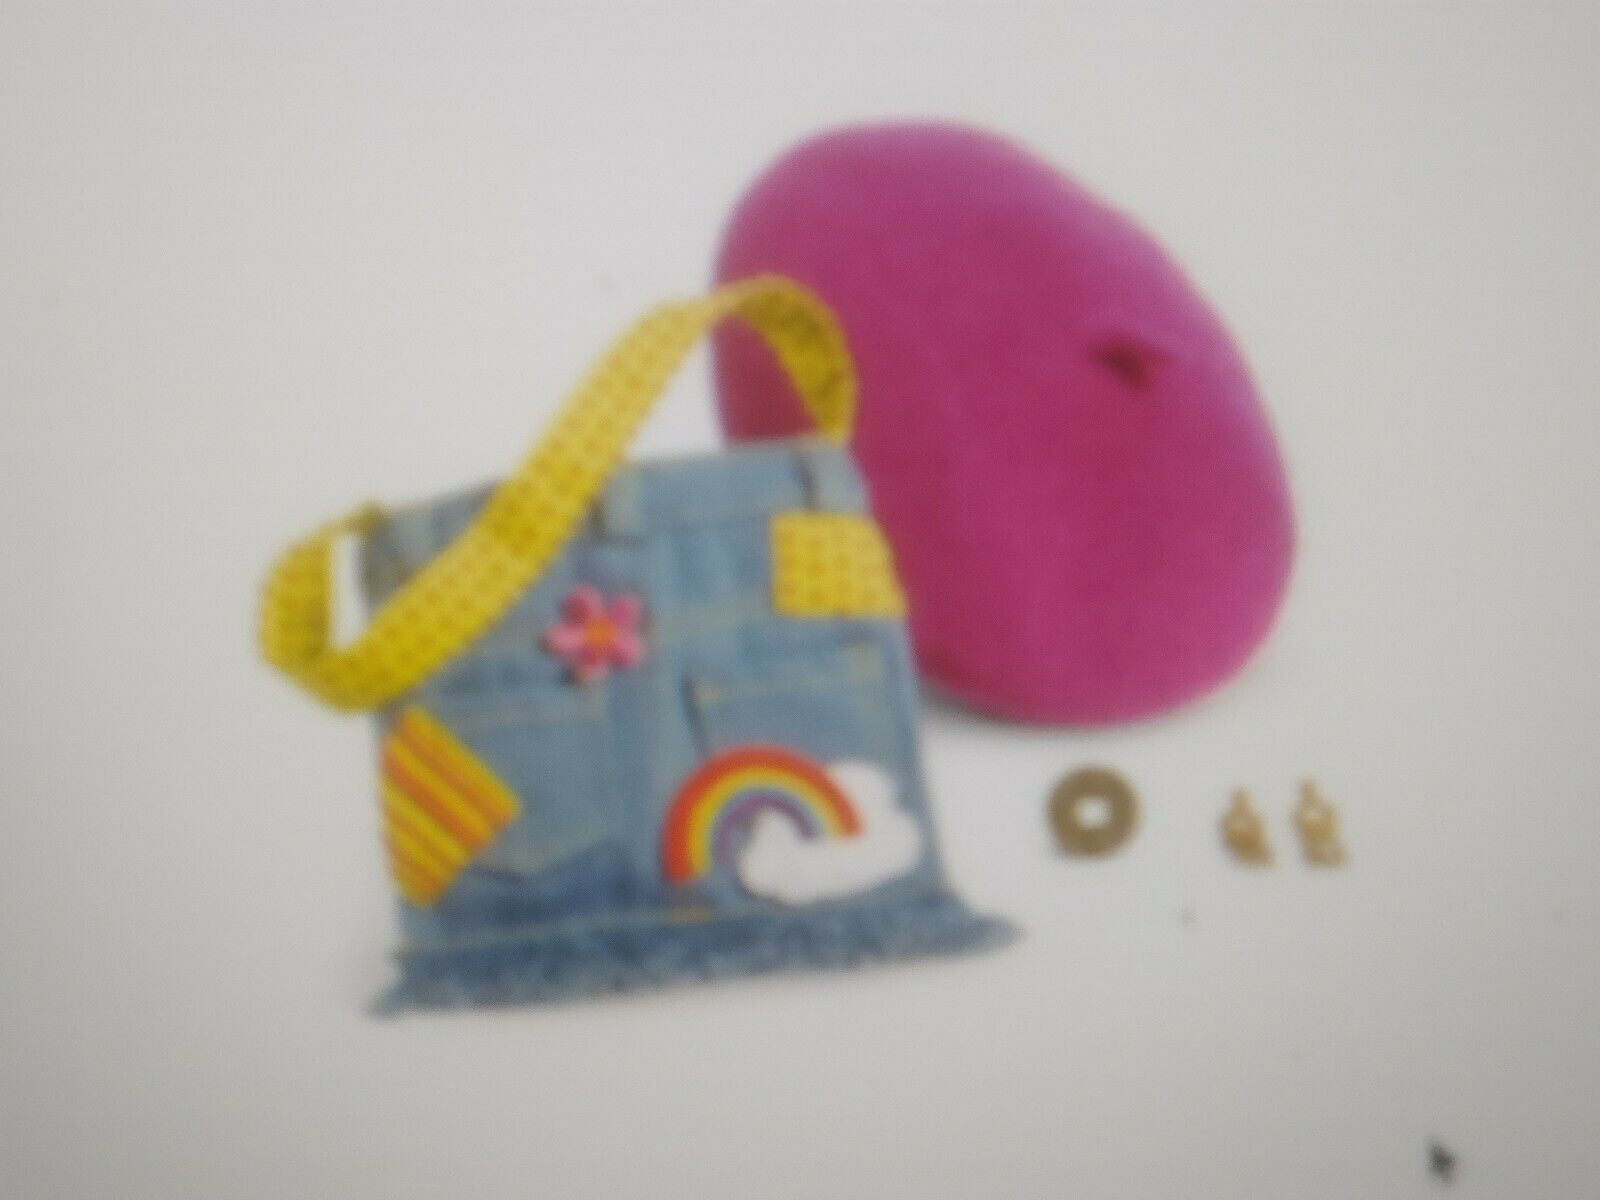 NEW - IVY LING MEET Acessories Hat Coin Purse + EARRINGS HTF RARE American Girl